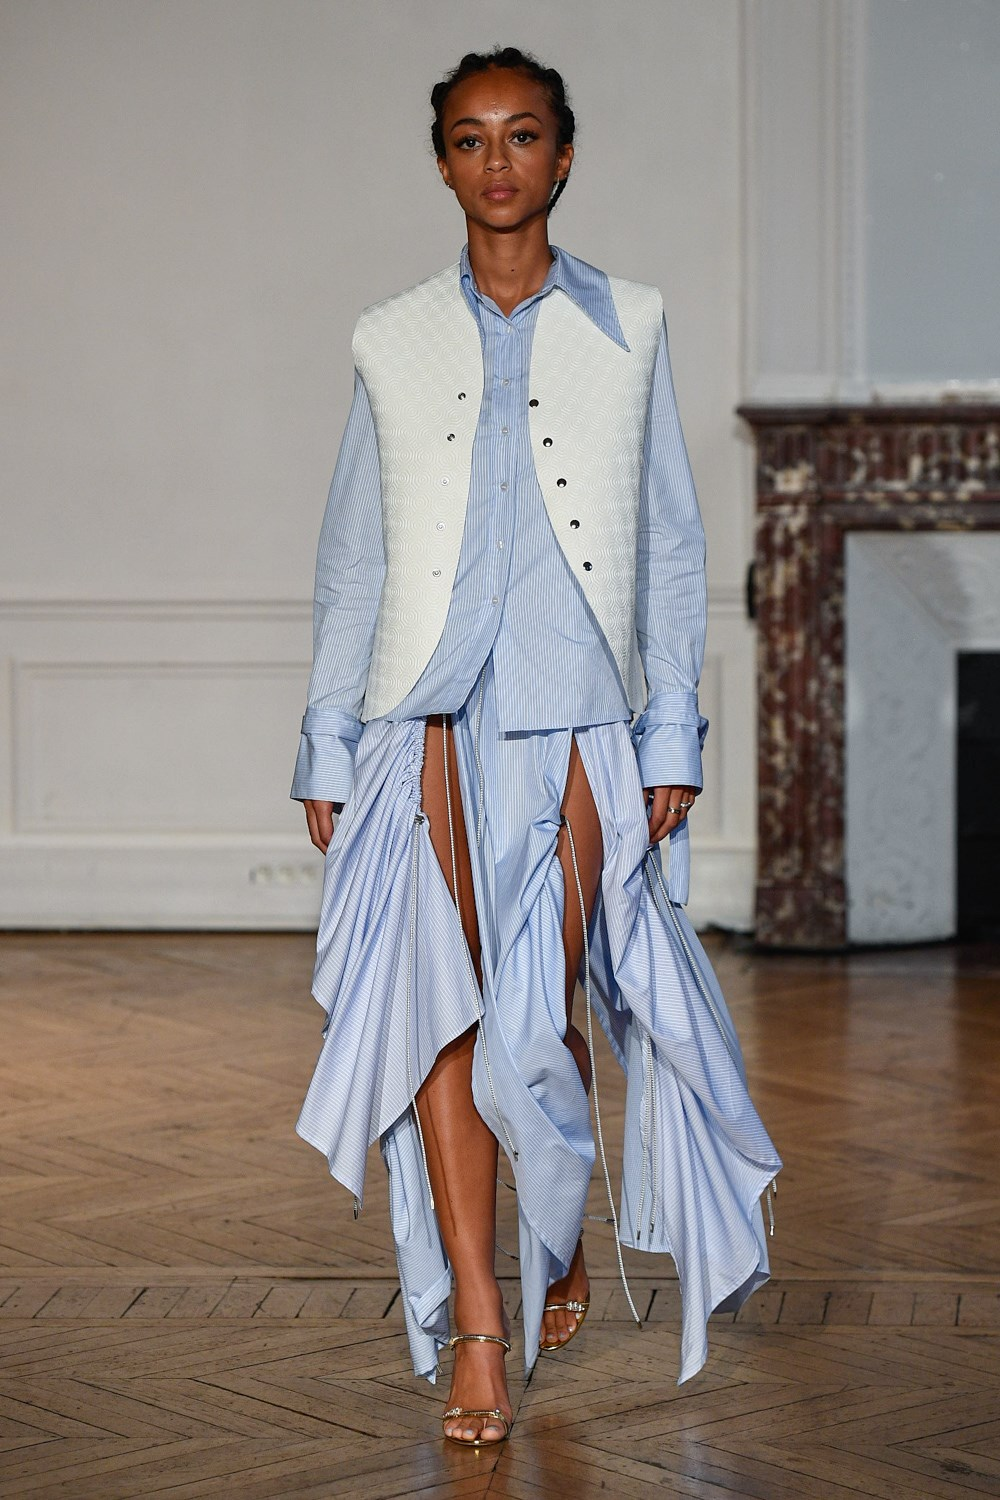 Redemption, Y/Project, Mugler, Afterhomework Spring 2020 Fashion Shows Review